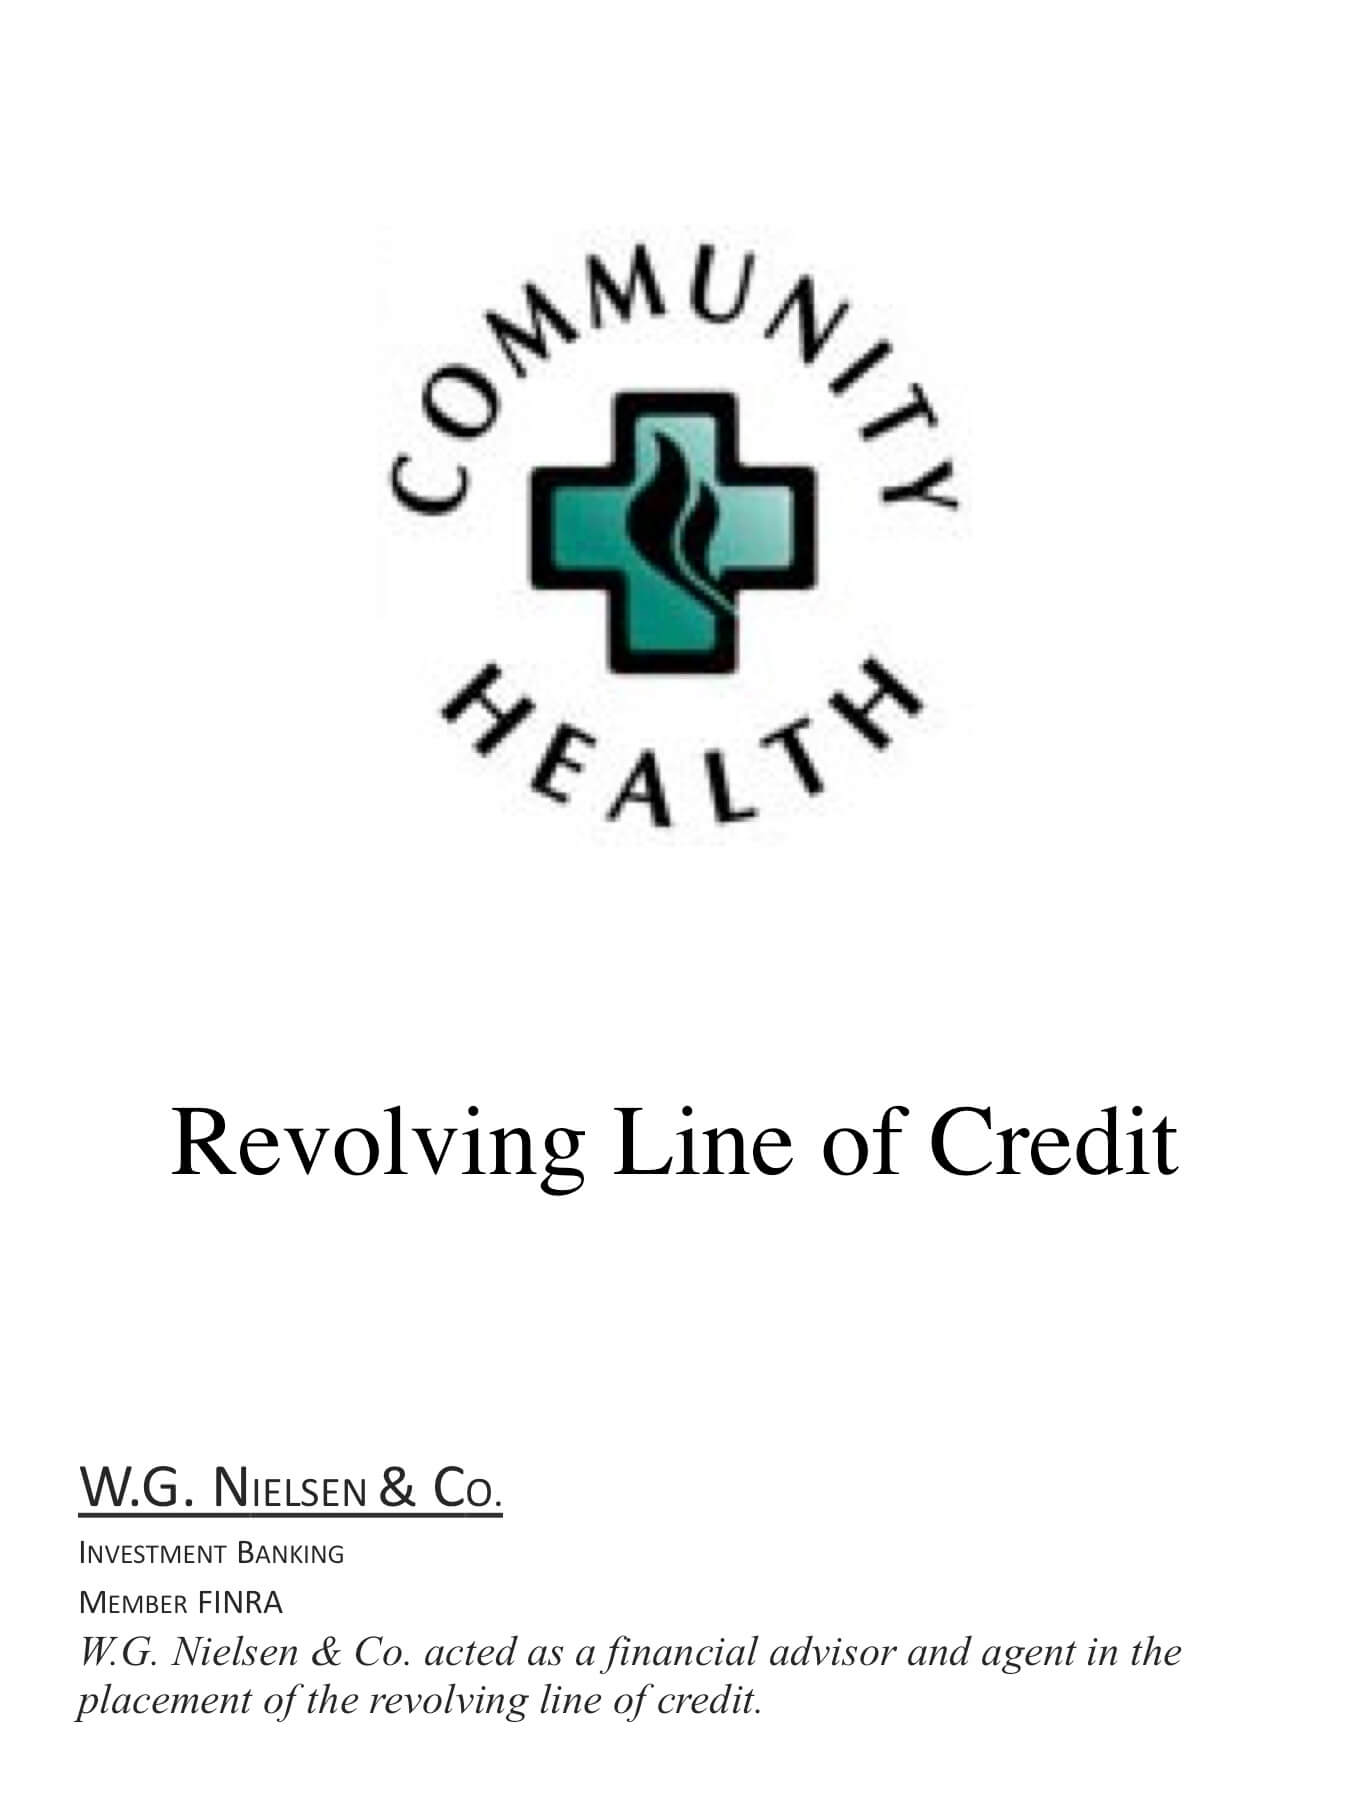 community health investment banking transaction